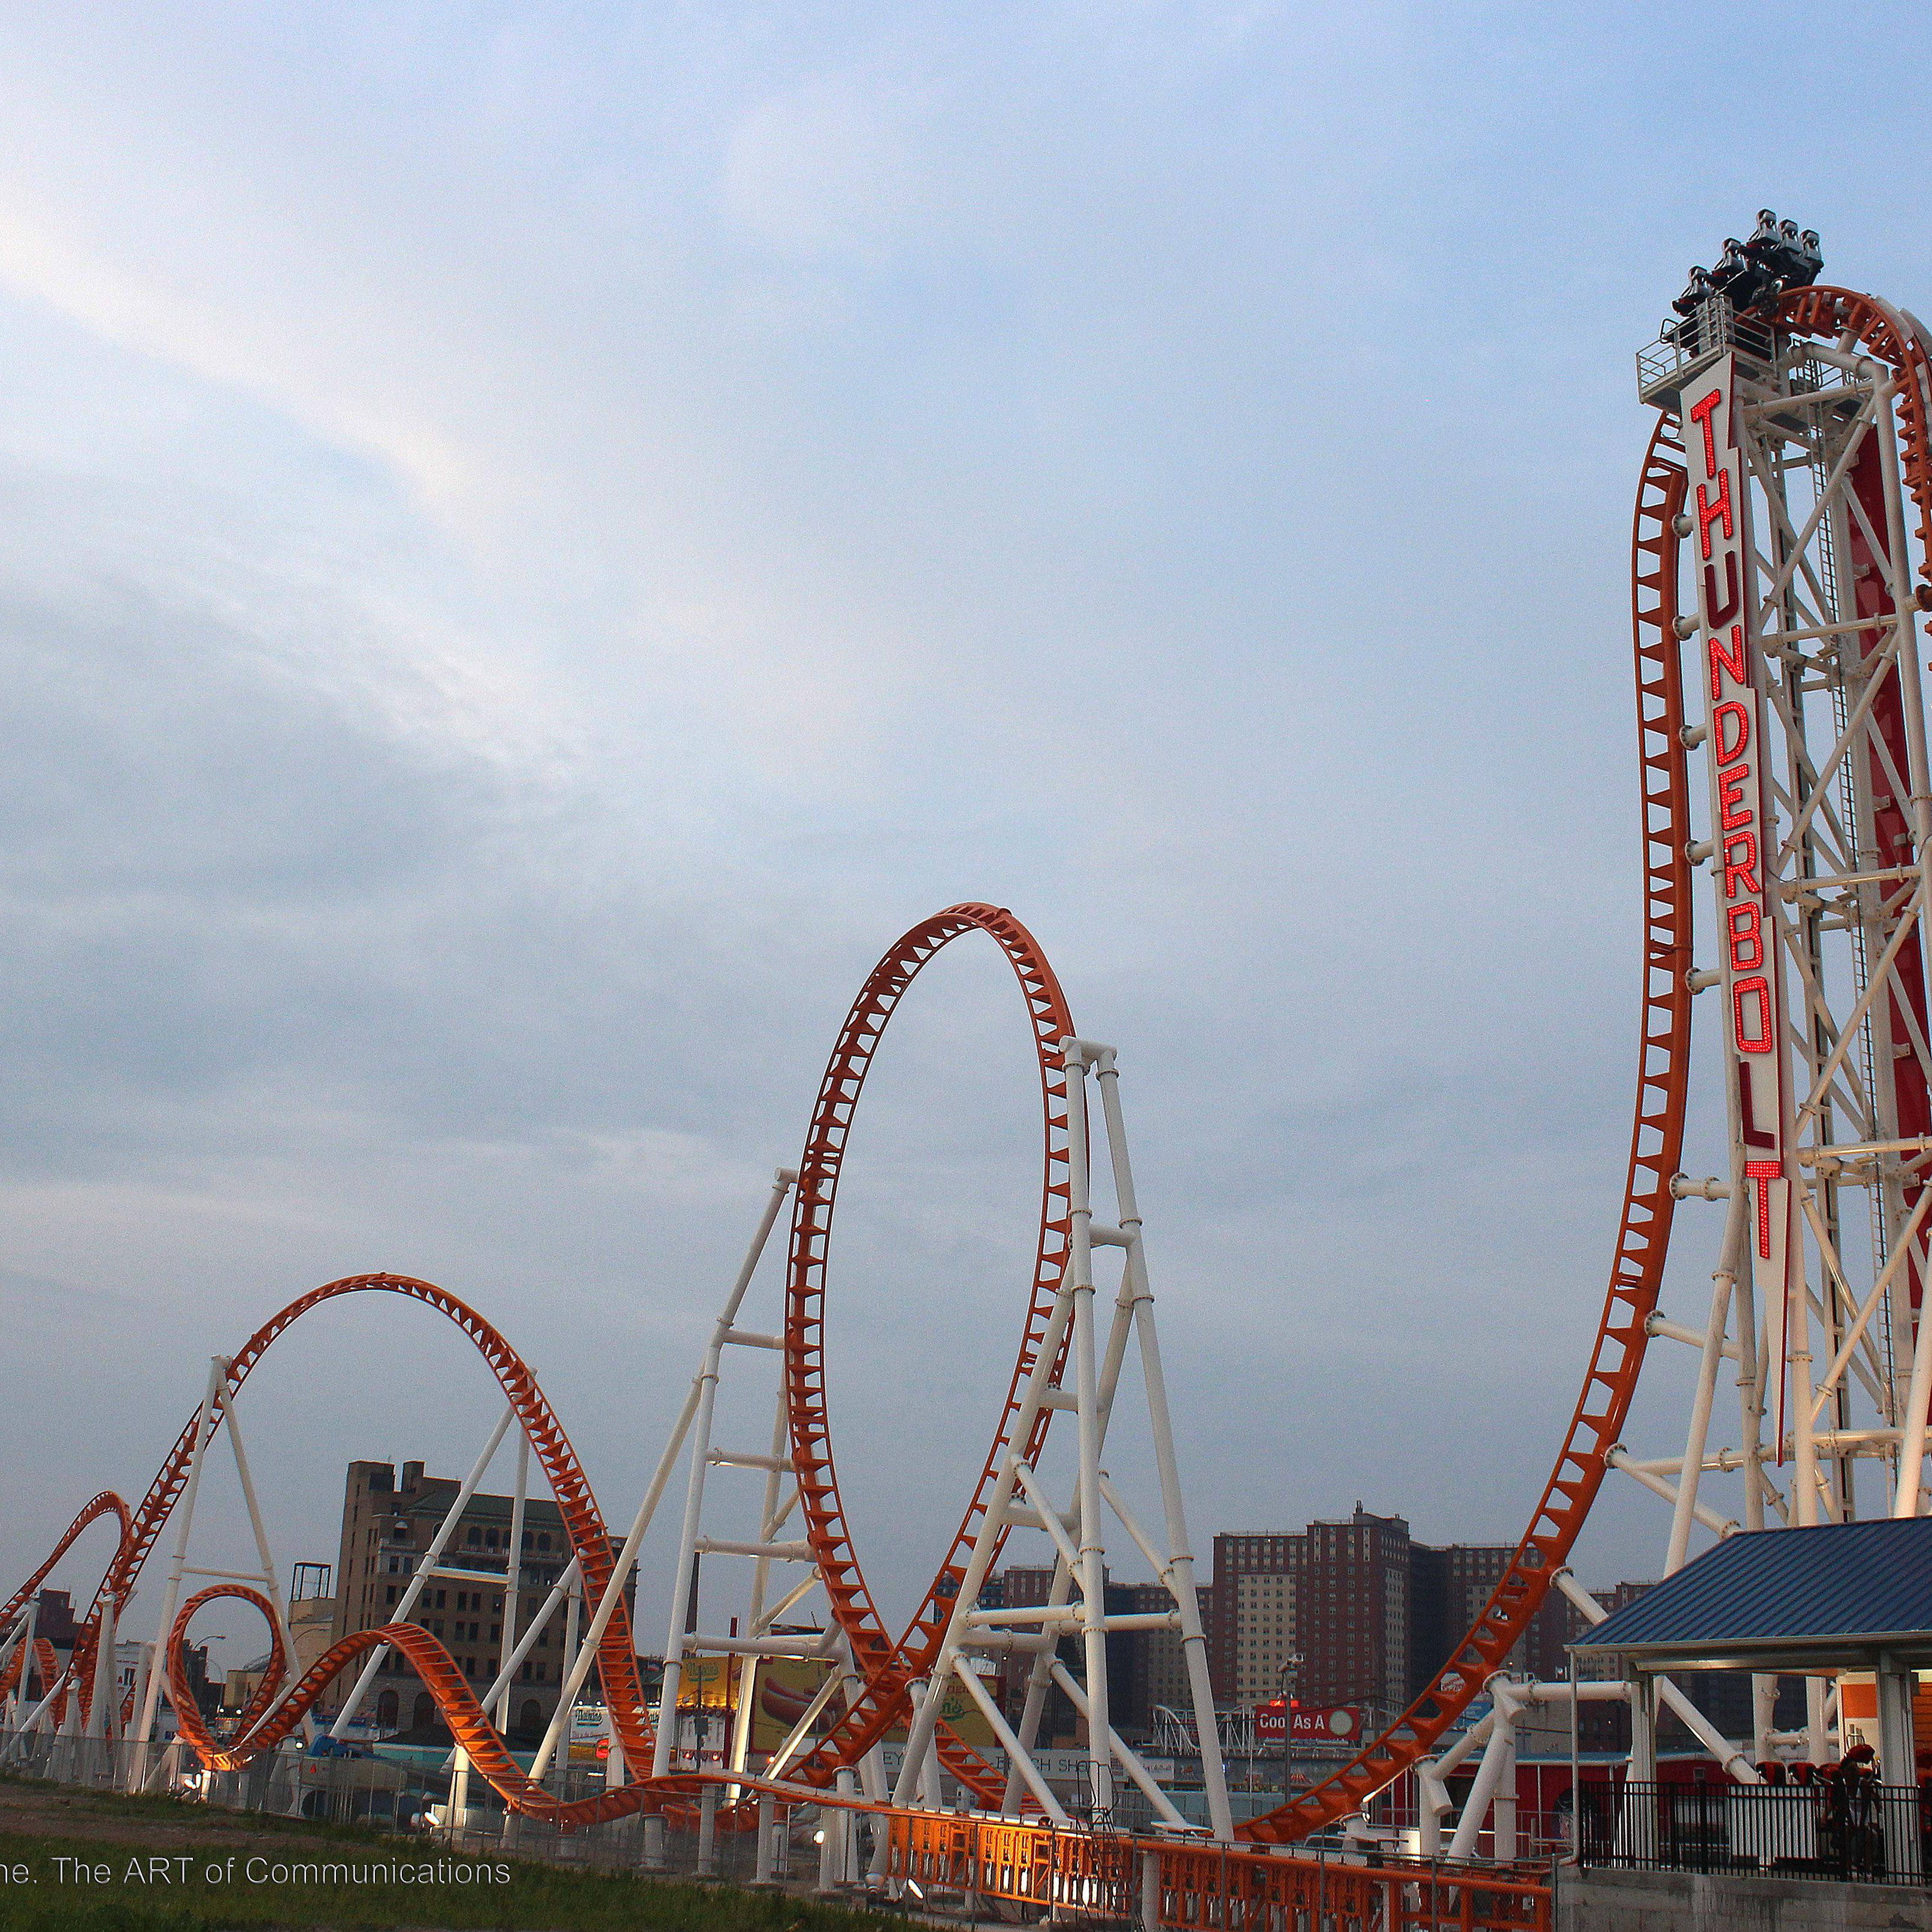 Thunderbolt Review Of Coney Island Roller Coaster